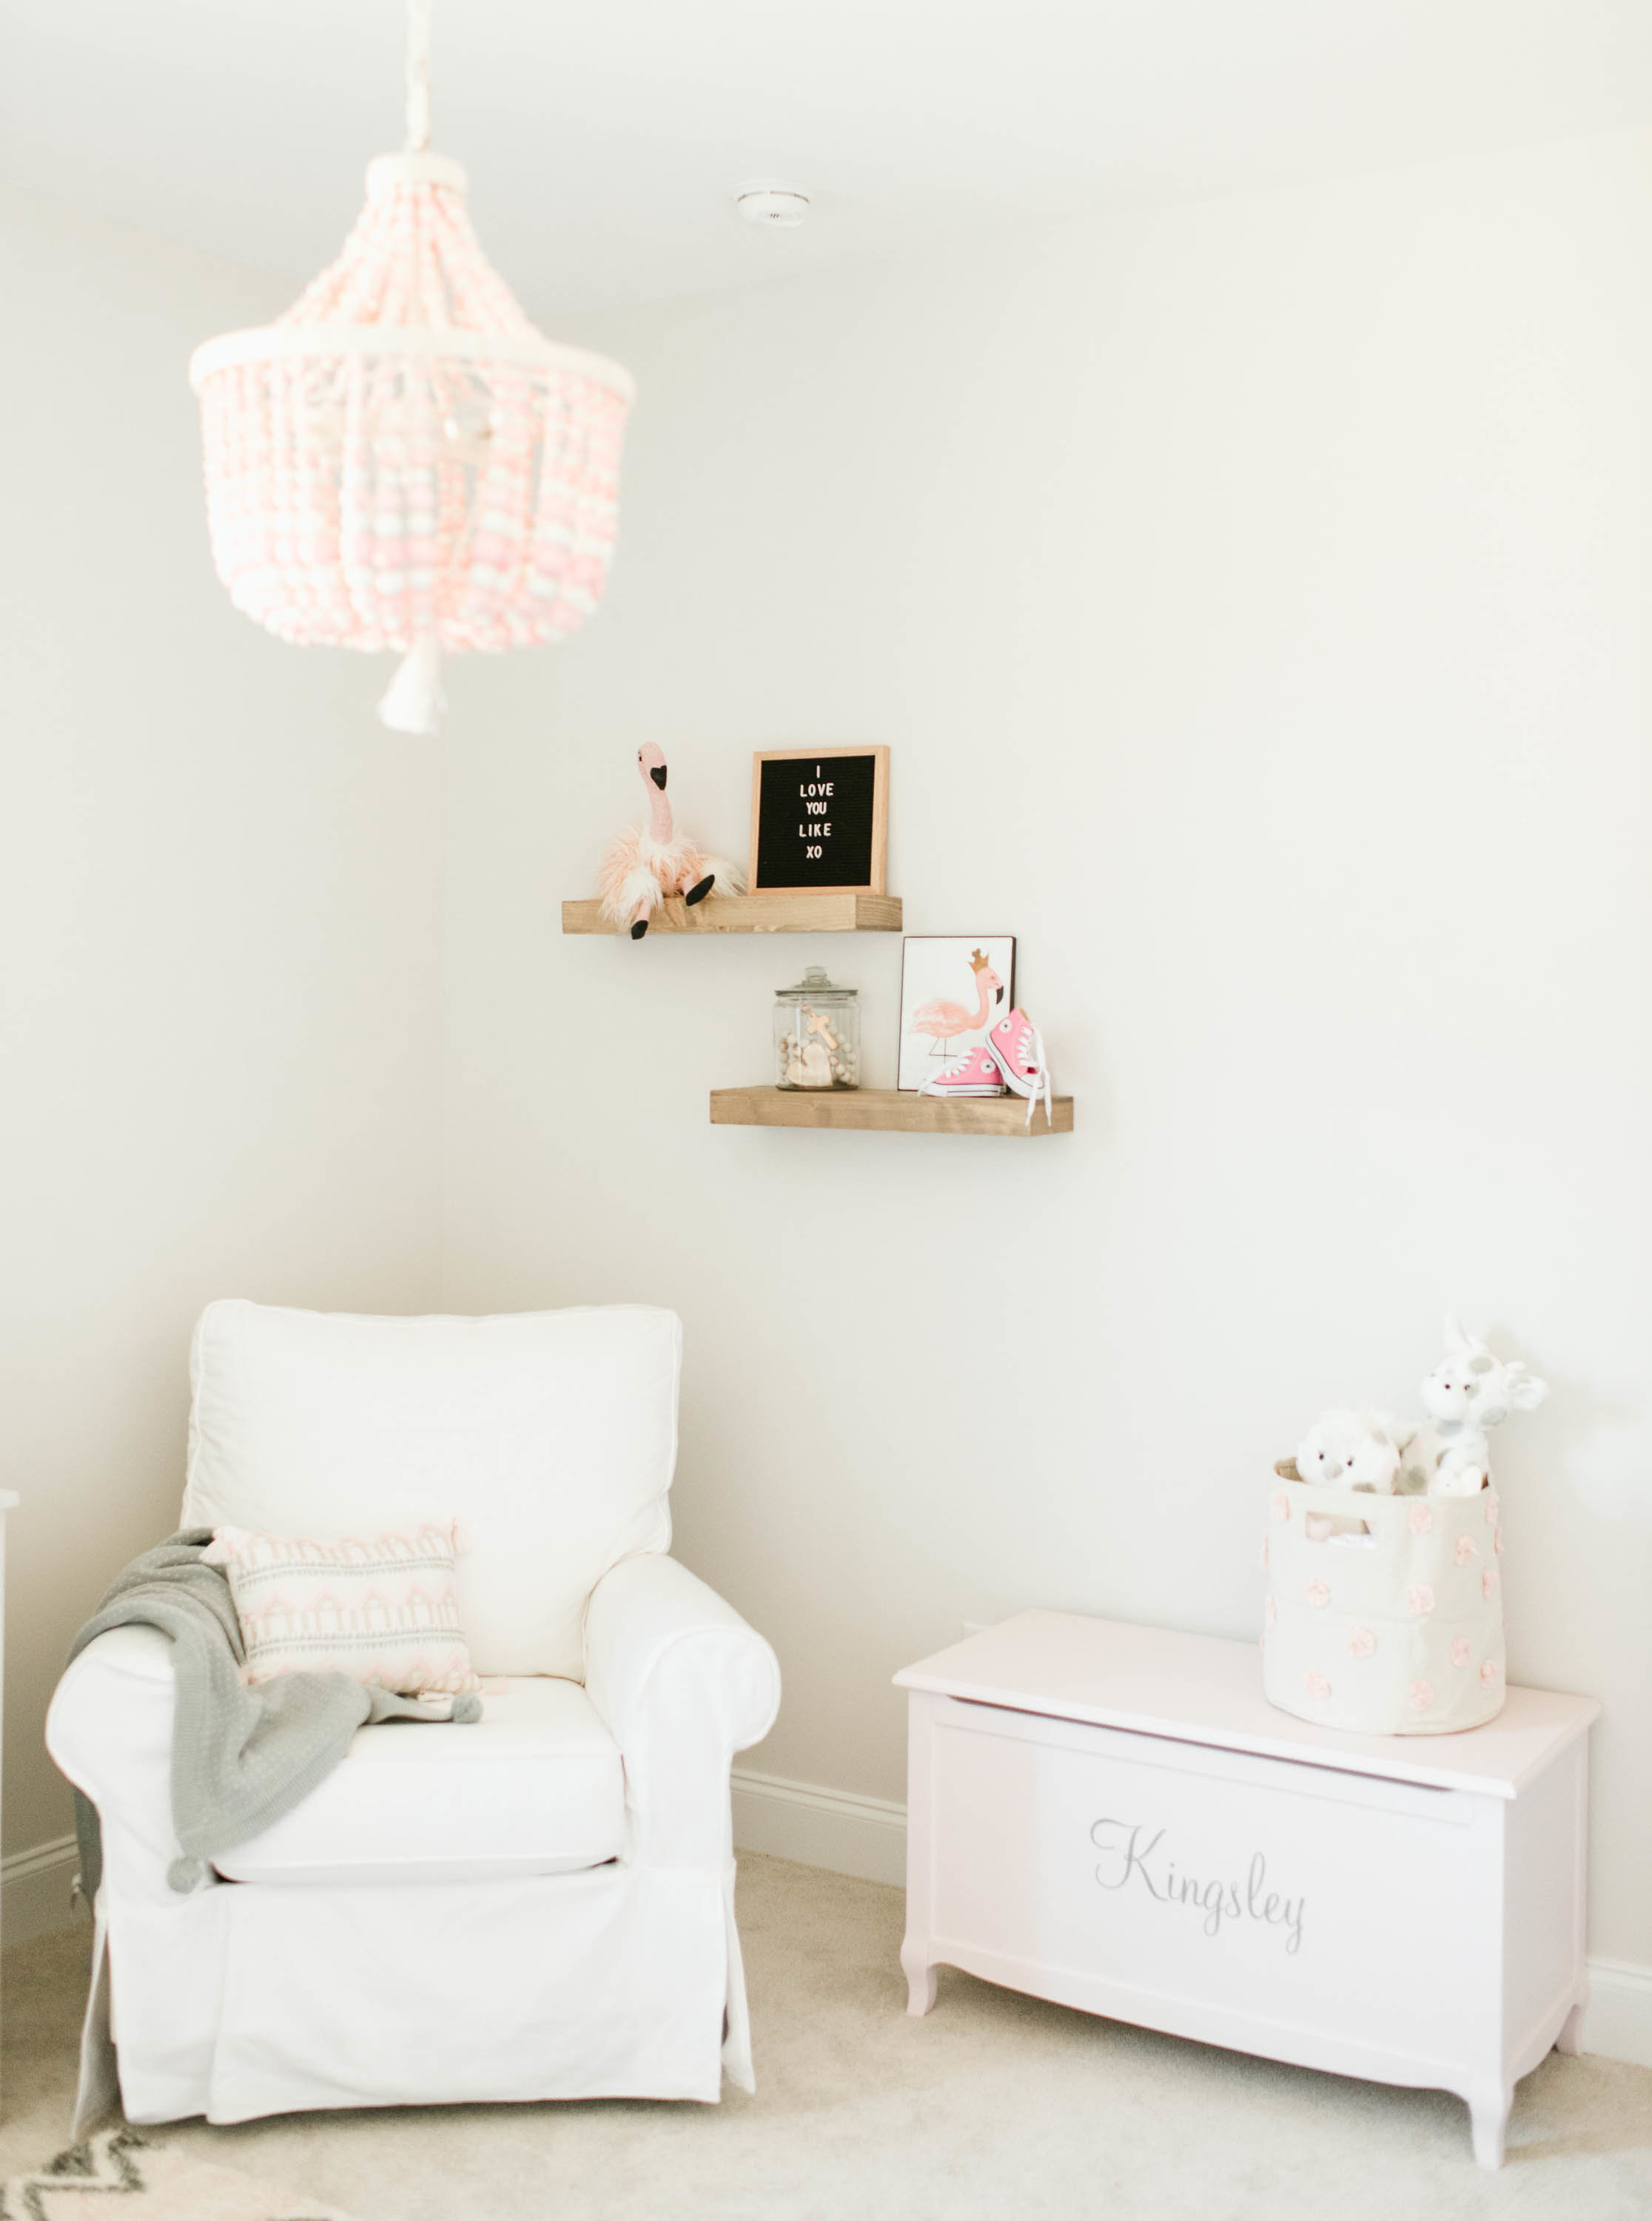 Glider and Toy Chest in Pink, White and Gray Nursery